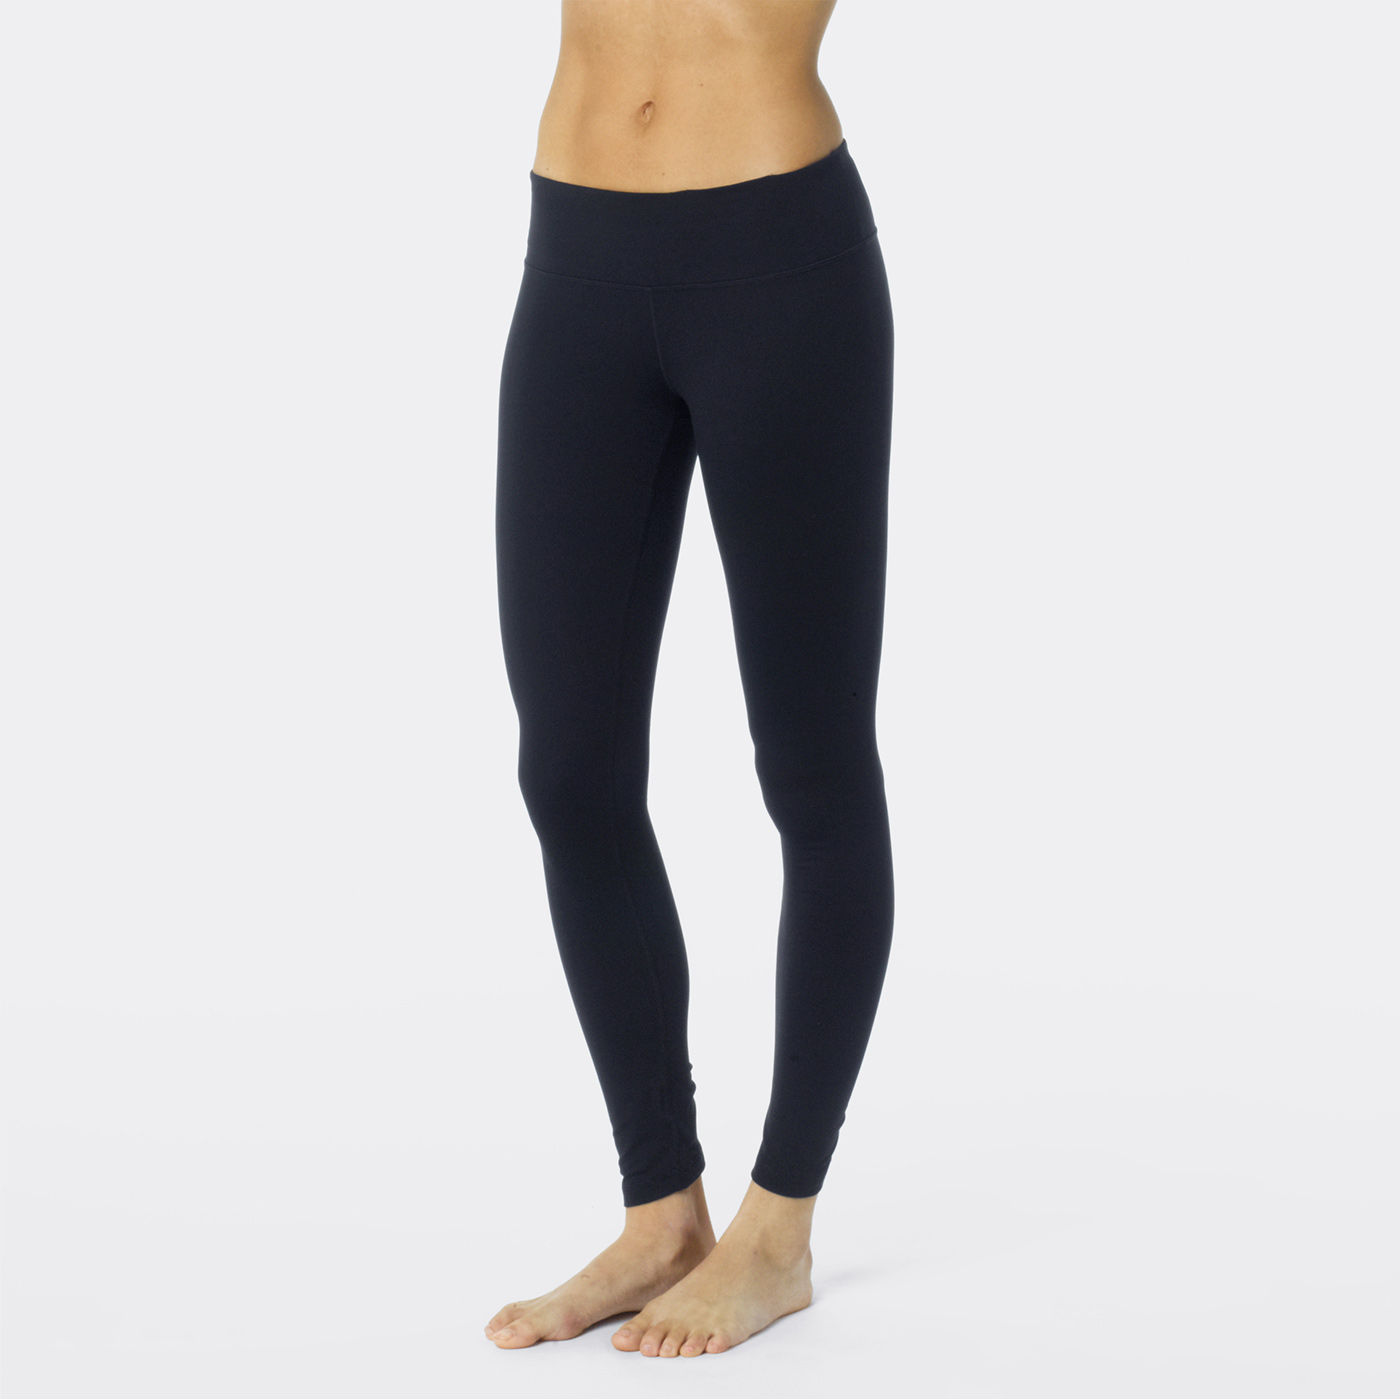 6a462ef68b Prana Misty Jacquard Legging Womens Apparel at Vickerey